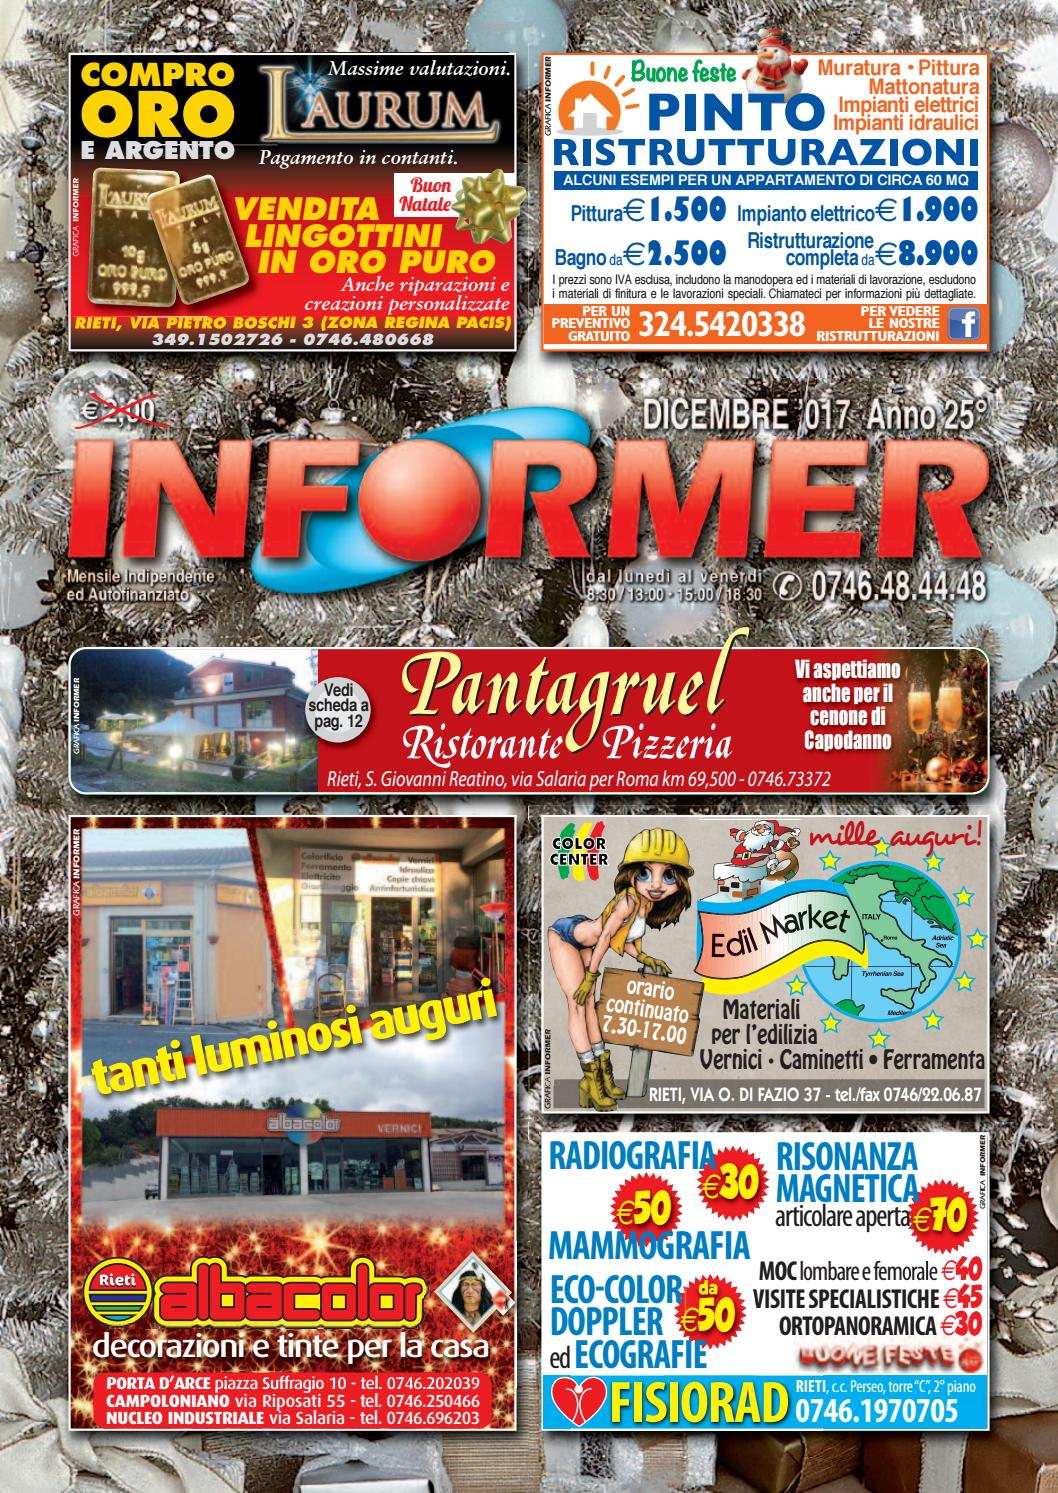 INFORMER dicembre 2017 by informer - issuu f527078483c